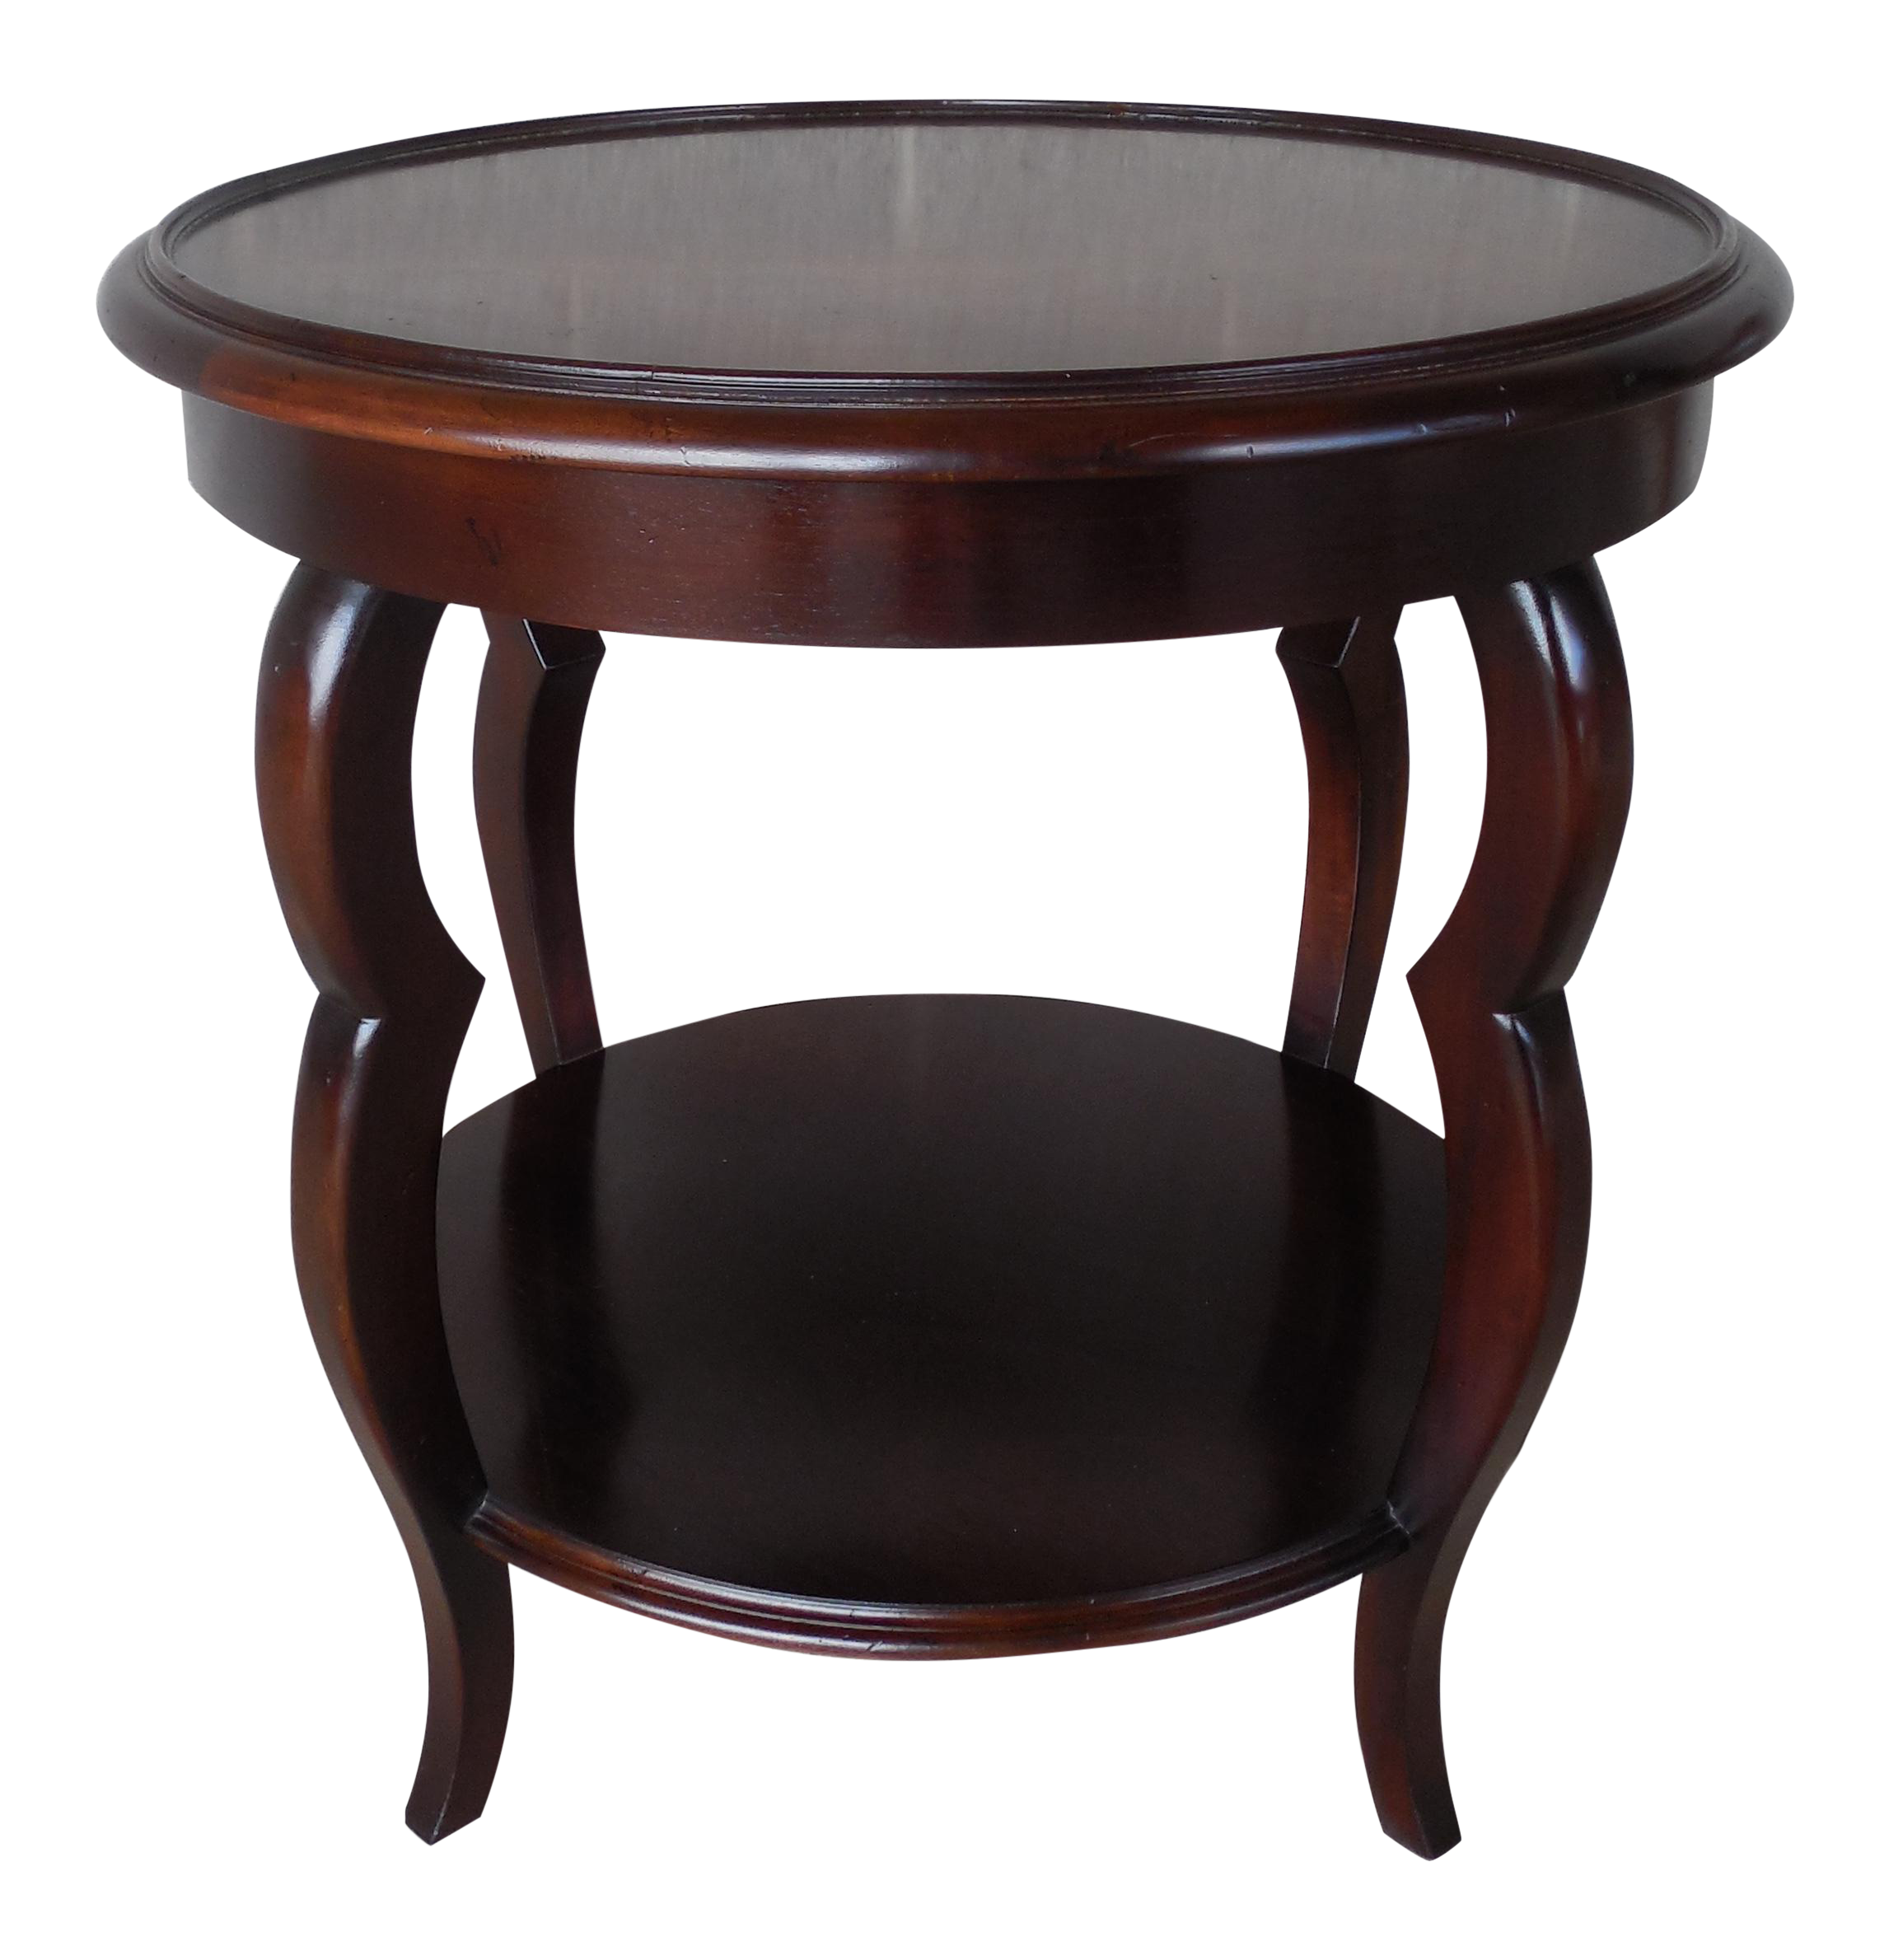 Baker Coffee Table Round: Baker Milling Road Round Mahogany Accent Table